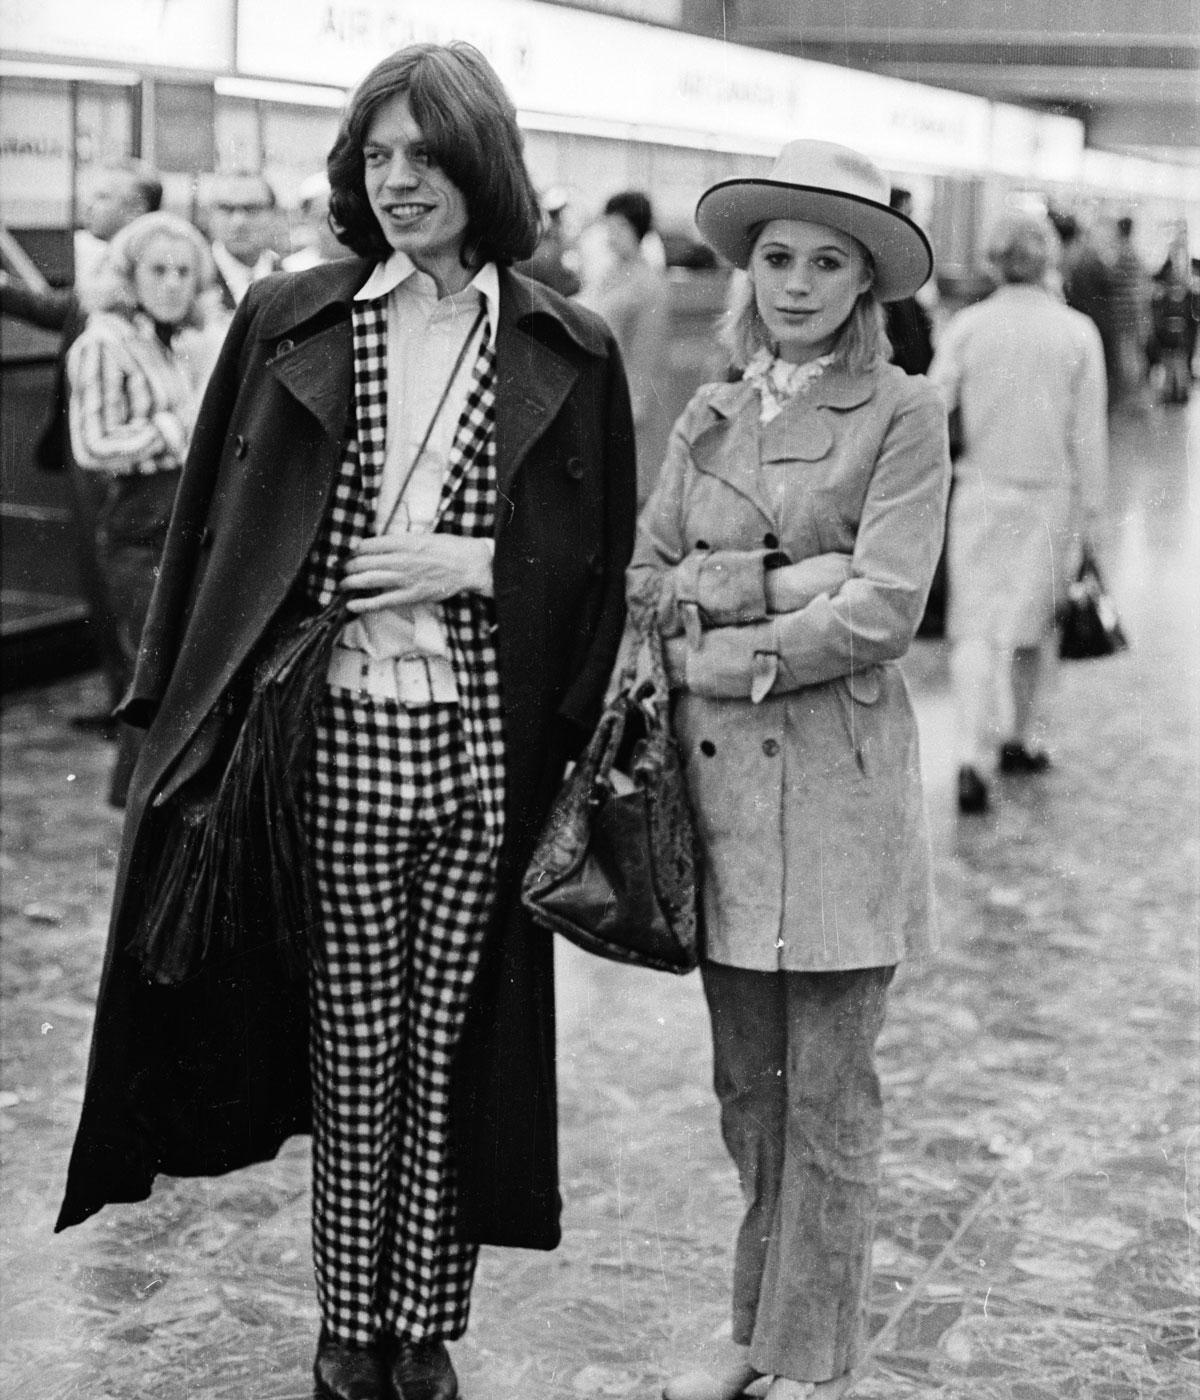 black and white image of mick jones and marianne faithful standing in an airport